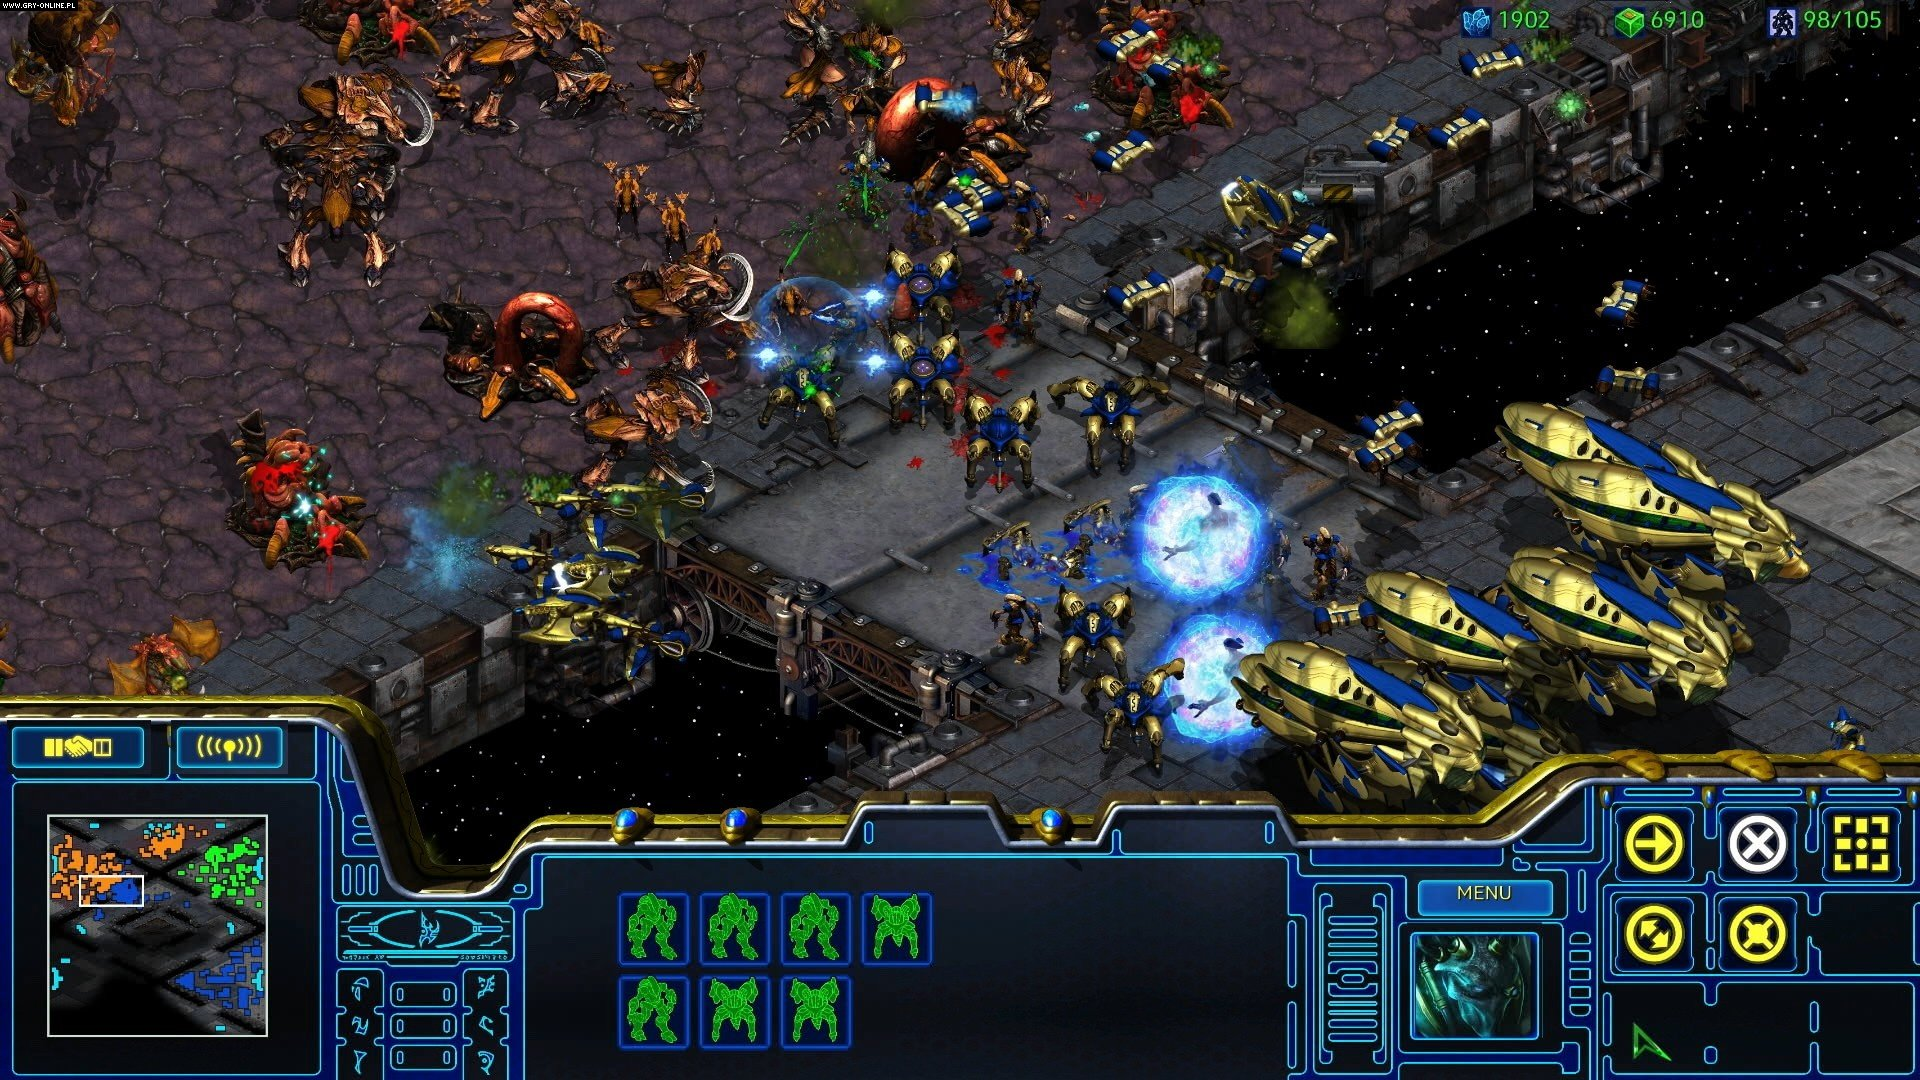 StarCraft: Remastered PC Gry Screen 3/15, Blizzard Entertainment